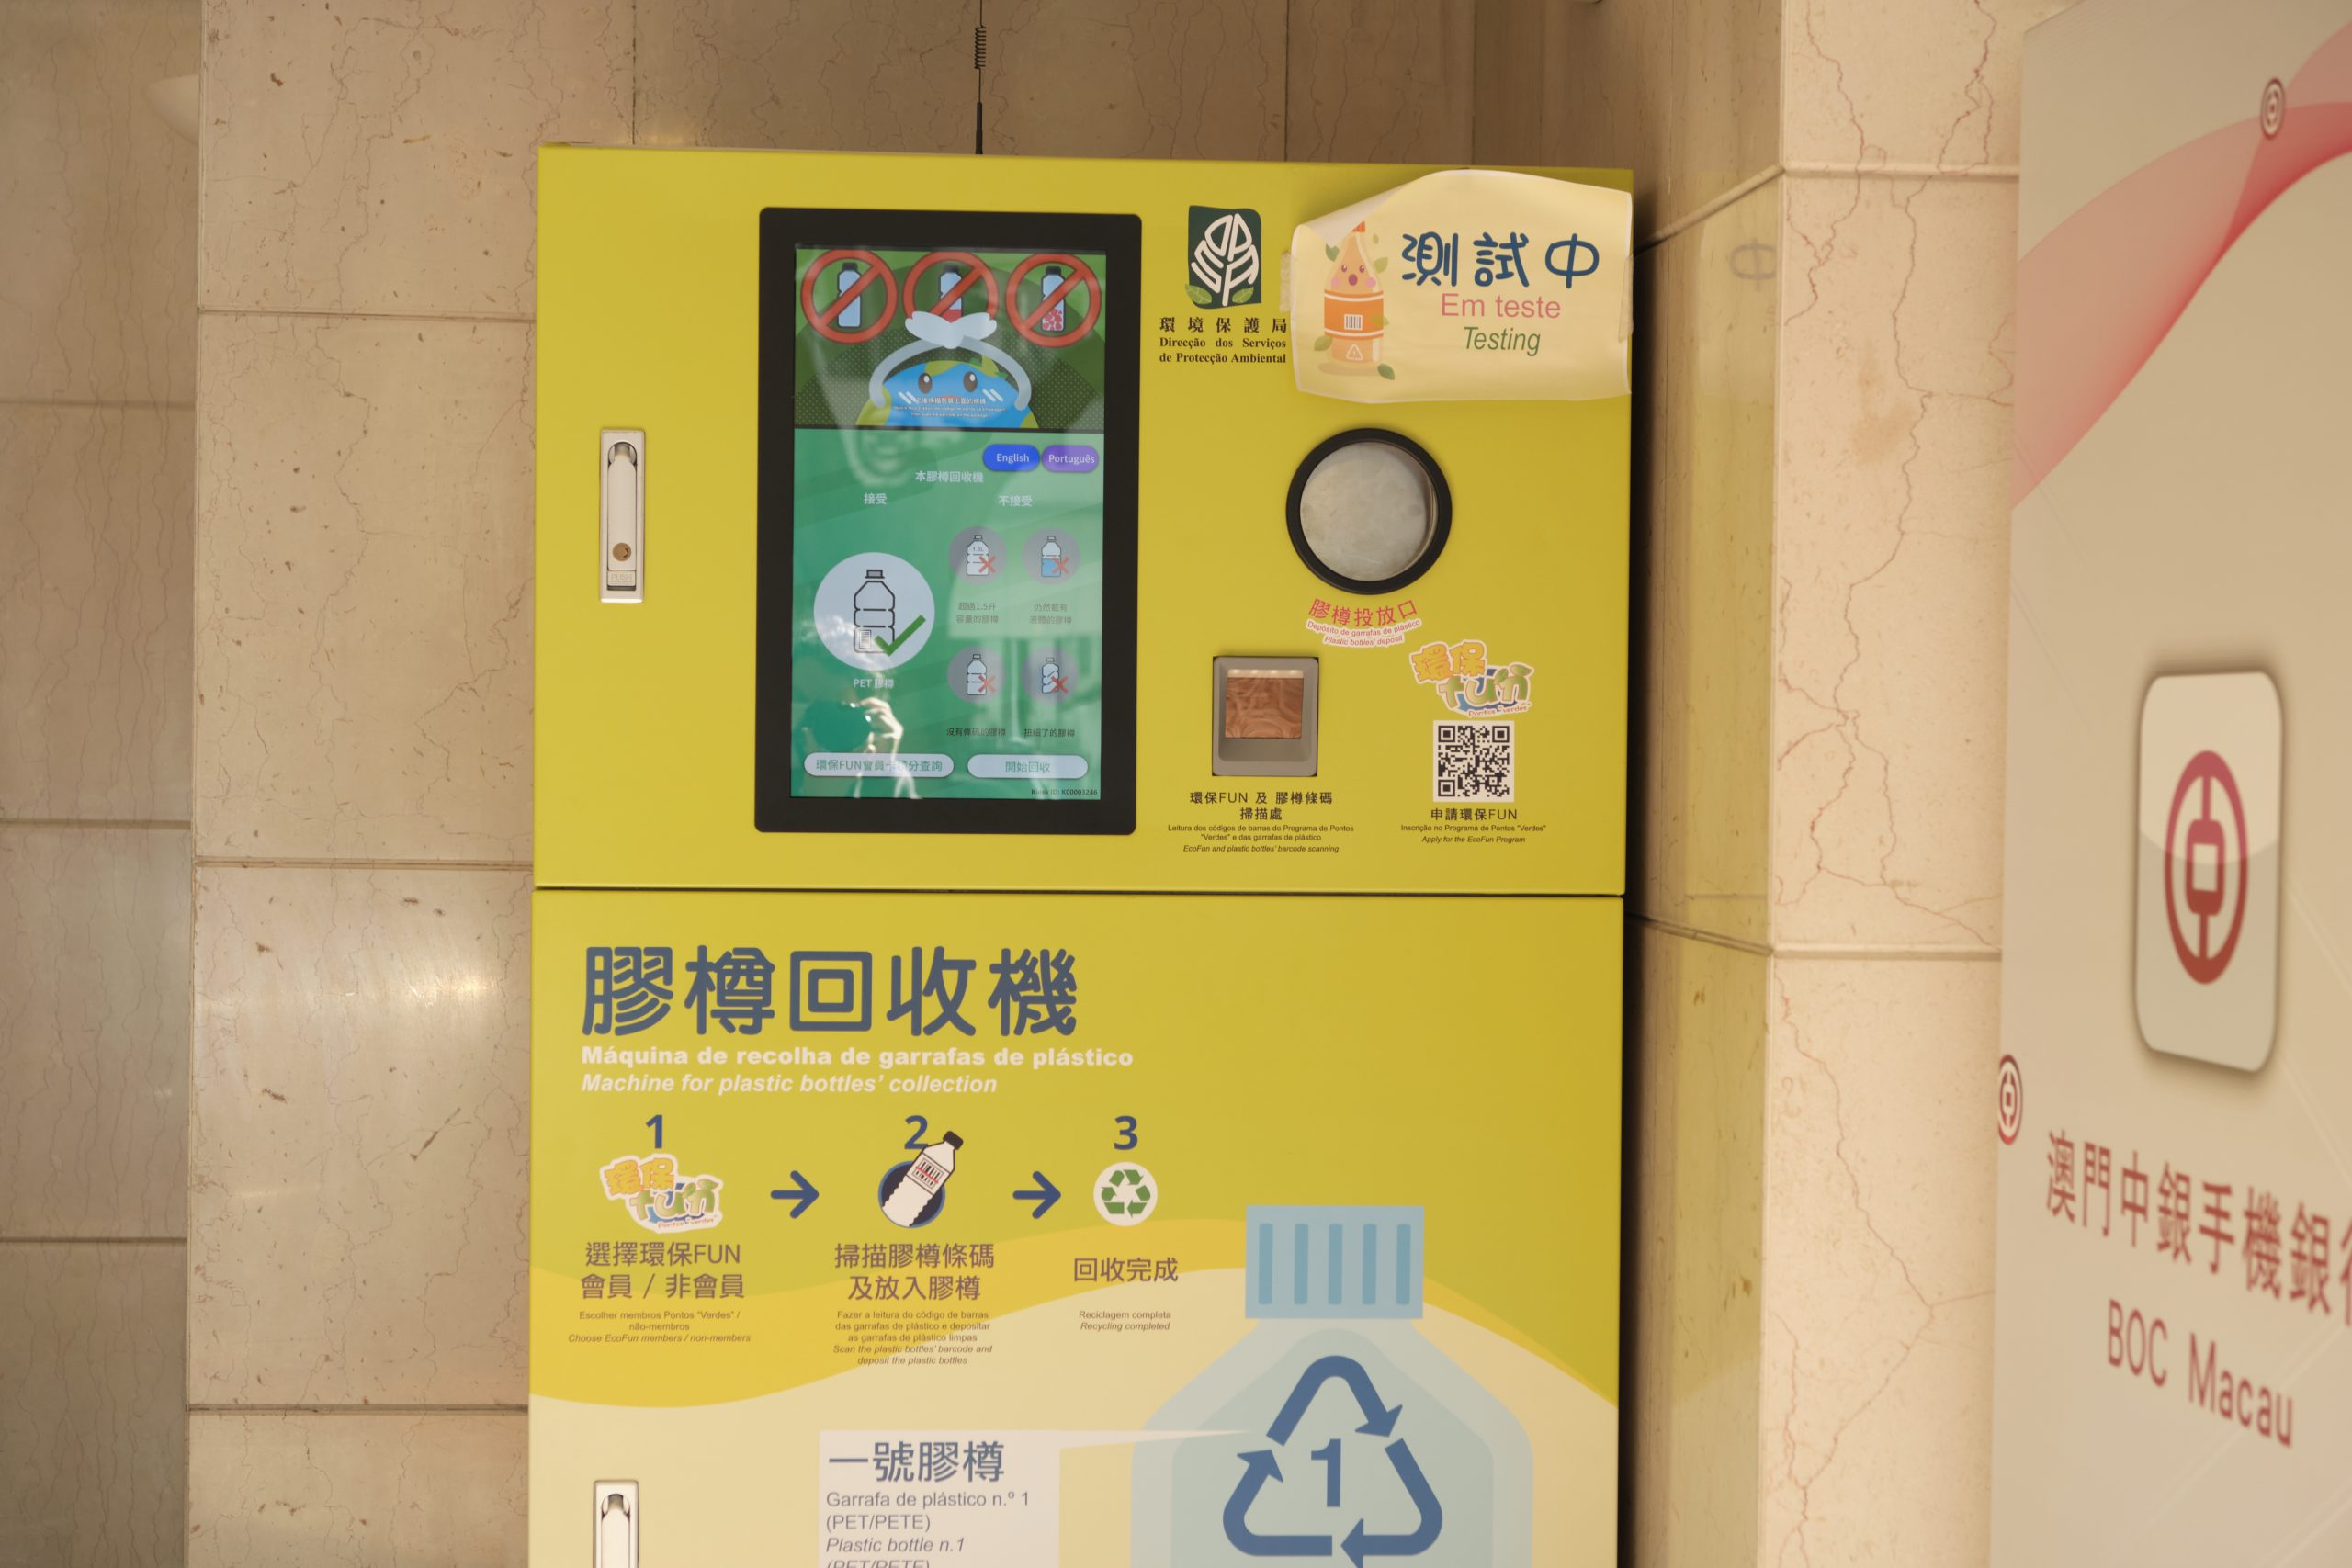 Your guide to plastic bottle collection machines in Macao